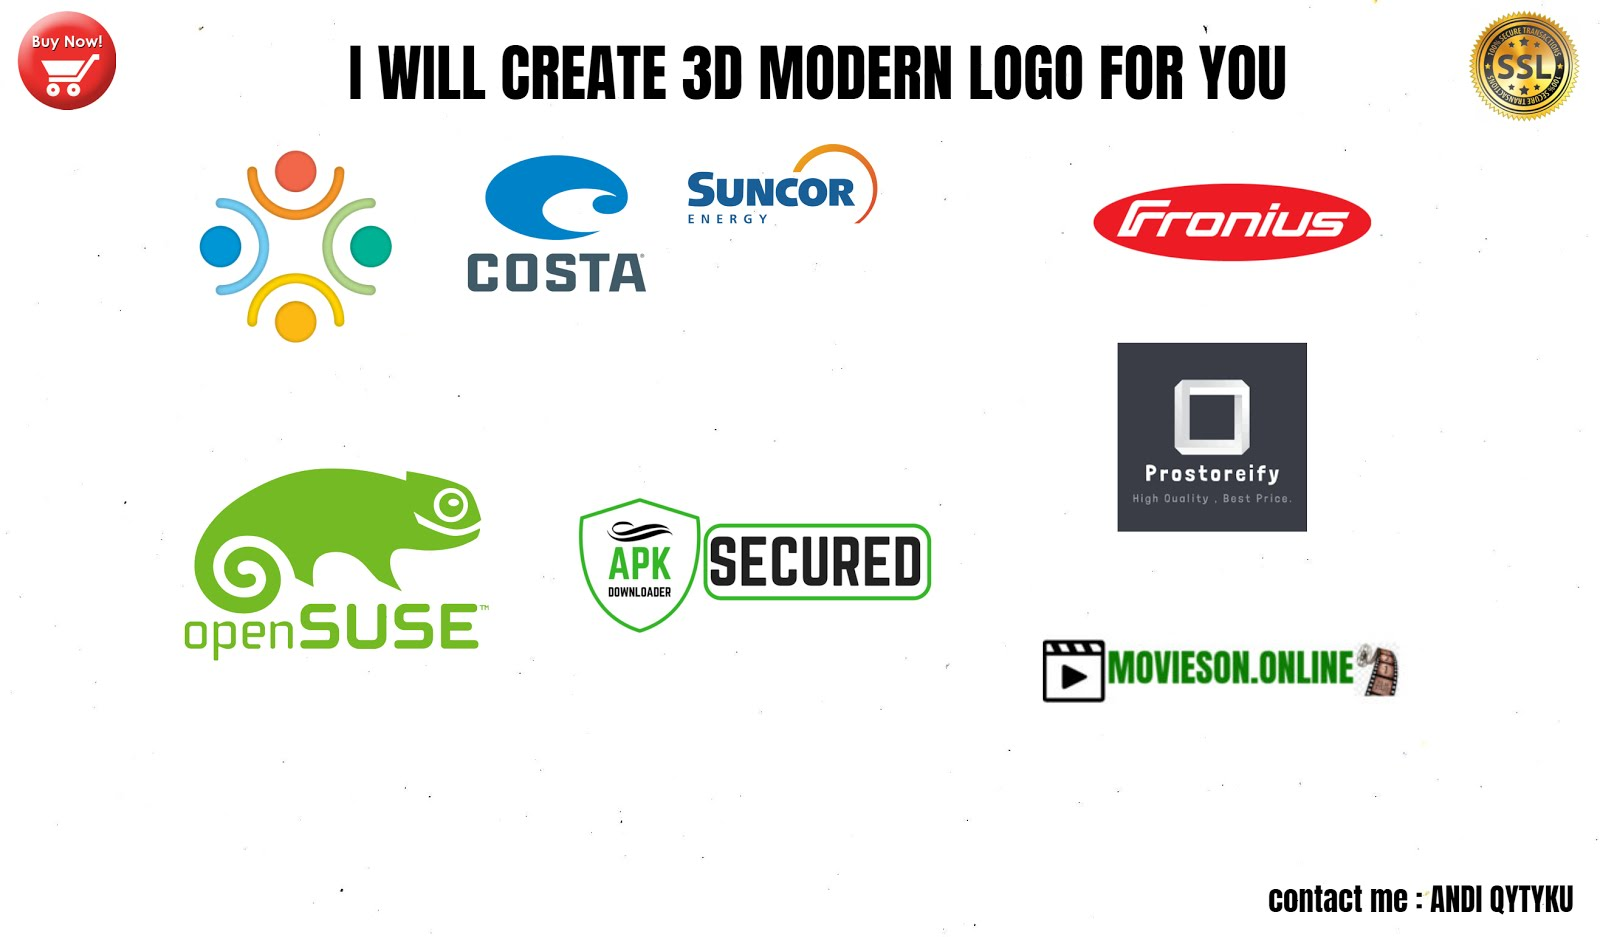 BUY CHEAP 3D MODERN LOGO